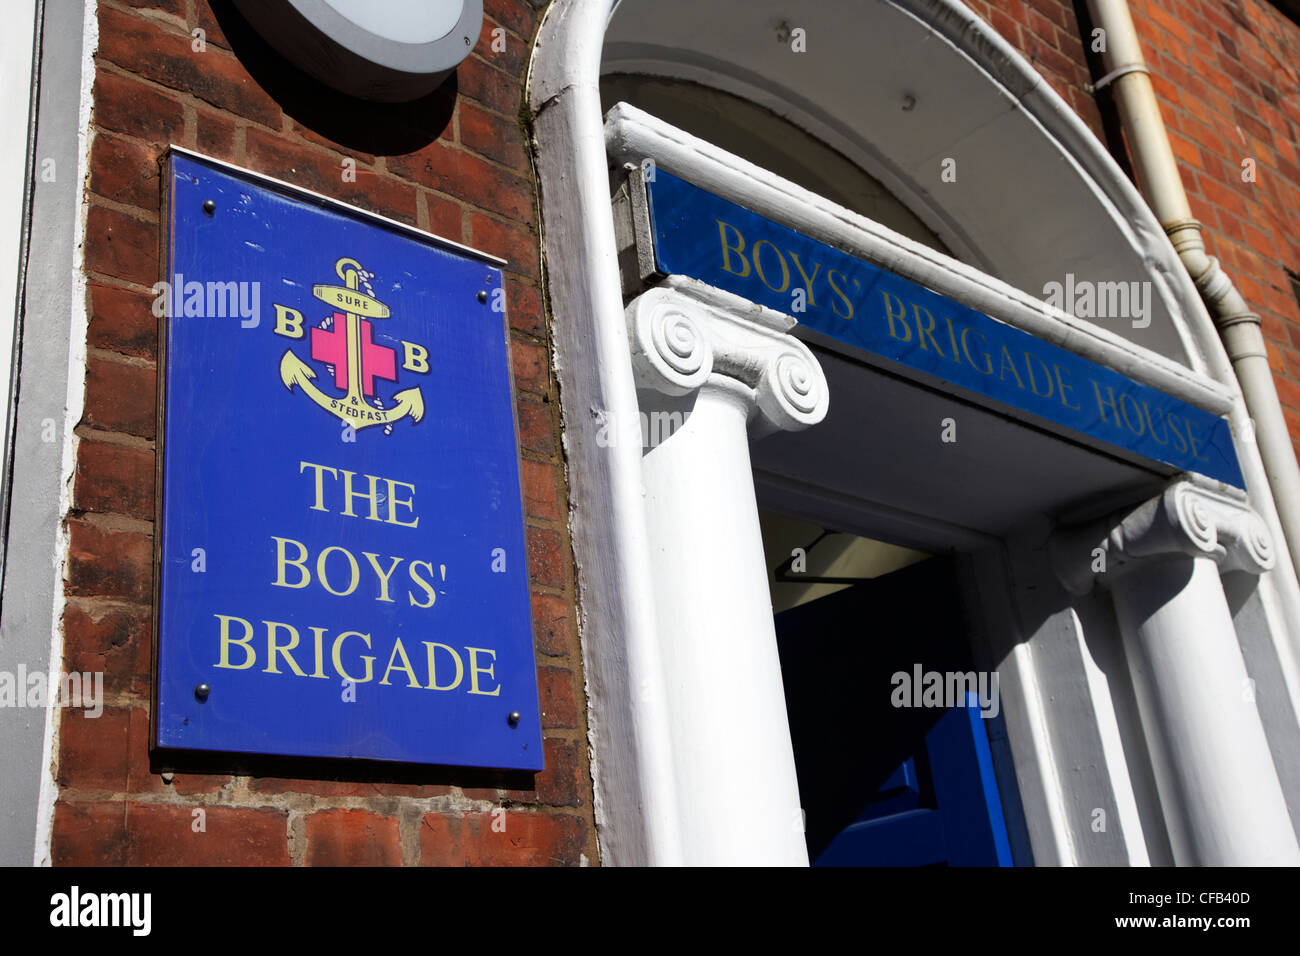 Boys brigade stock photos boys brigade stock images alamy the boys brigade offices belfast northern ireland uk stock image thecheapjerseys Image collections